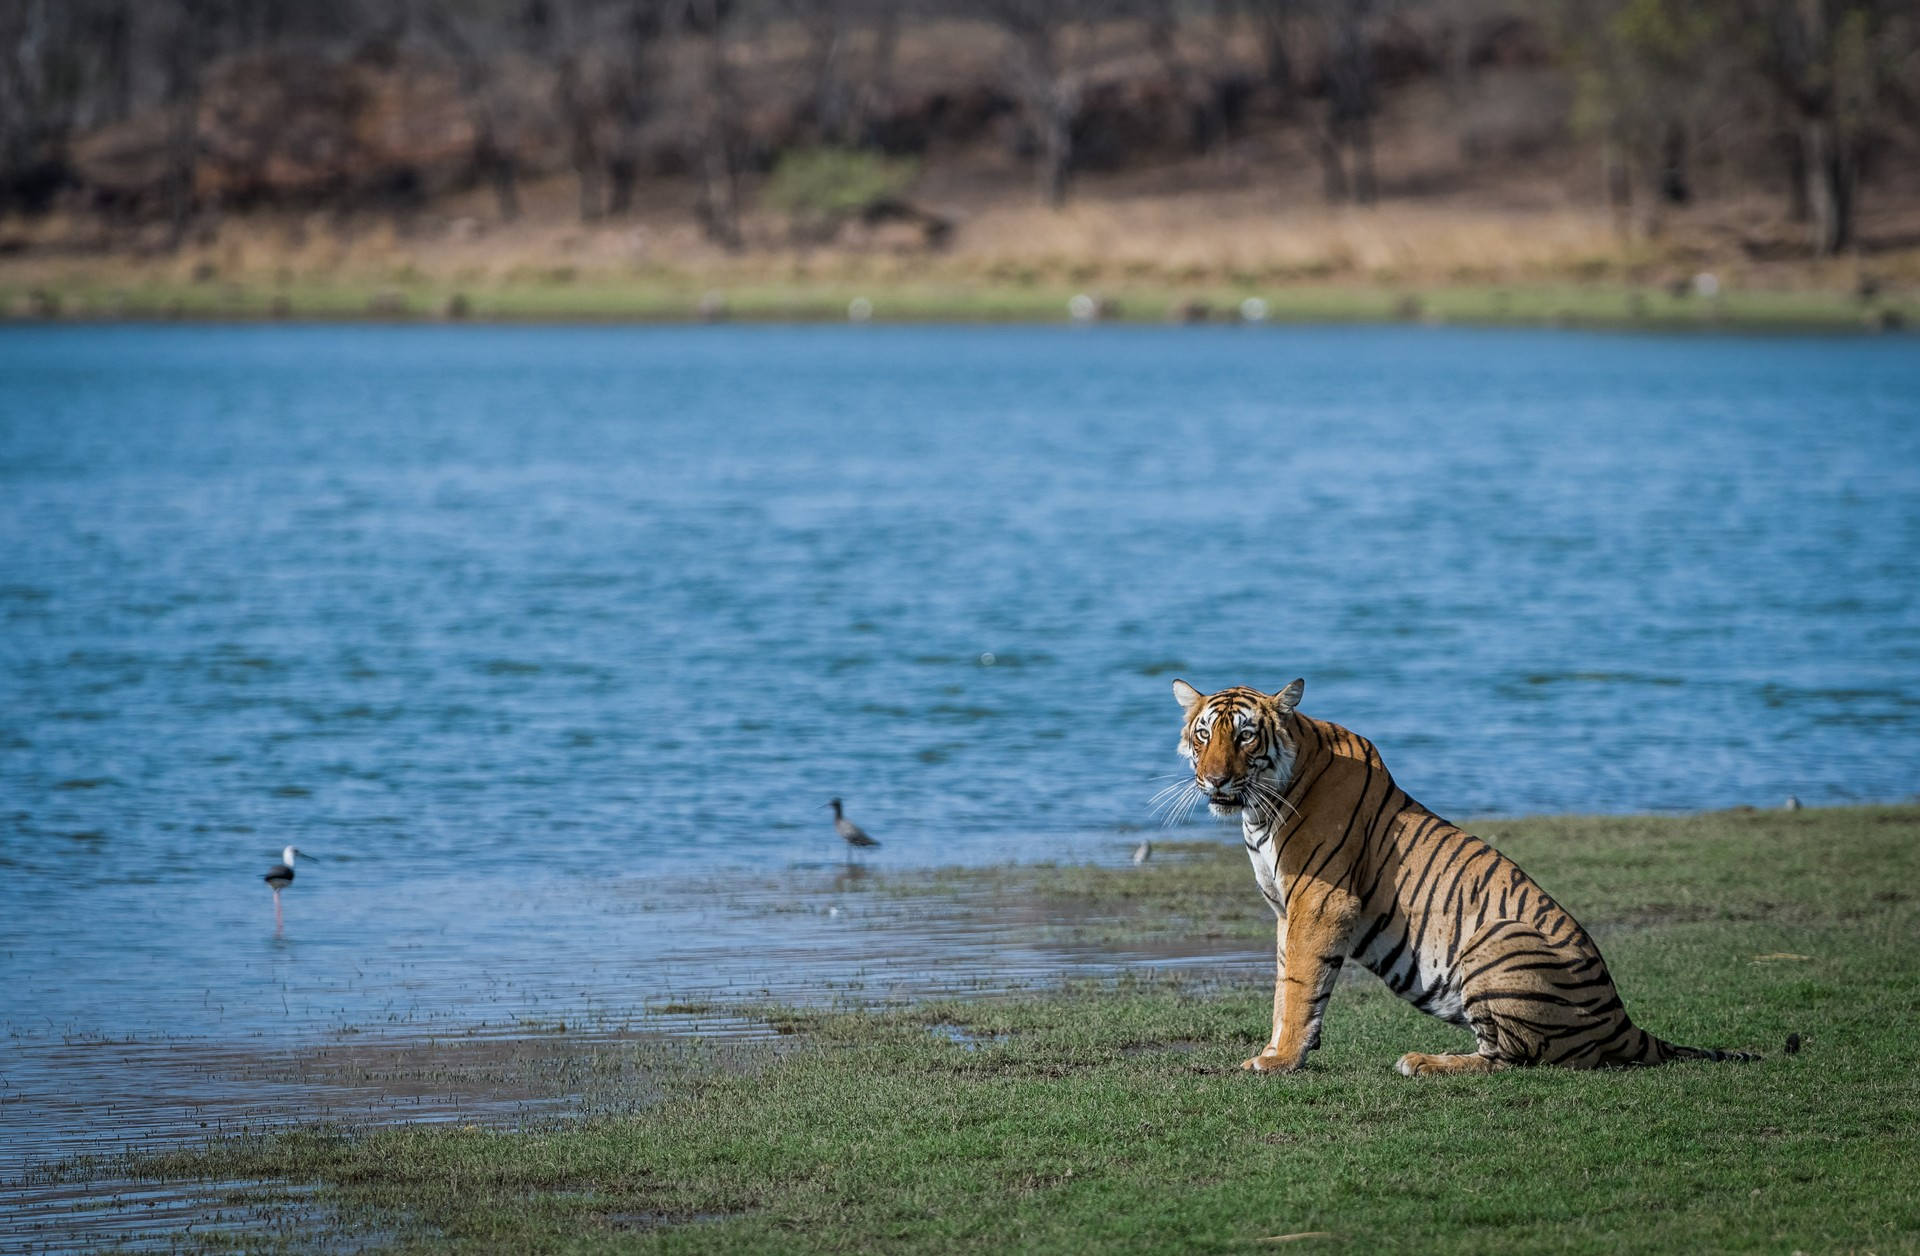 Wild tiger by lake in India